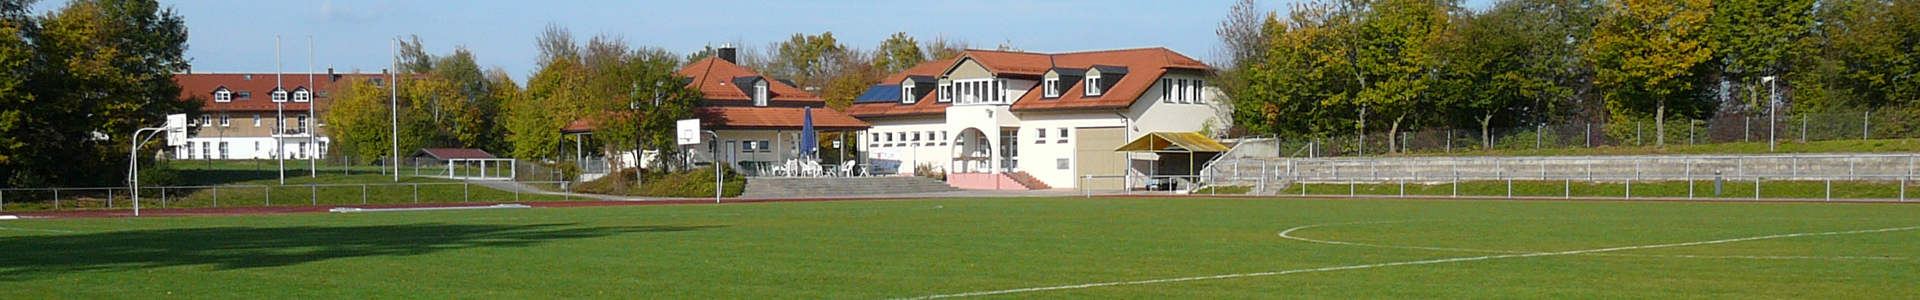 SCPP Sport Club Pöcking Possenhofen